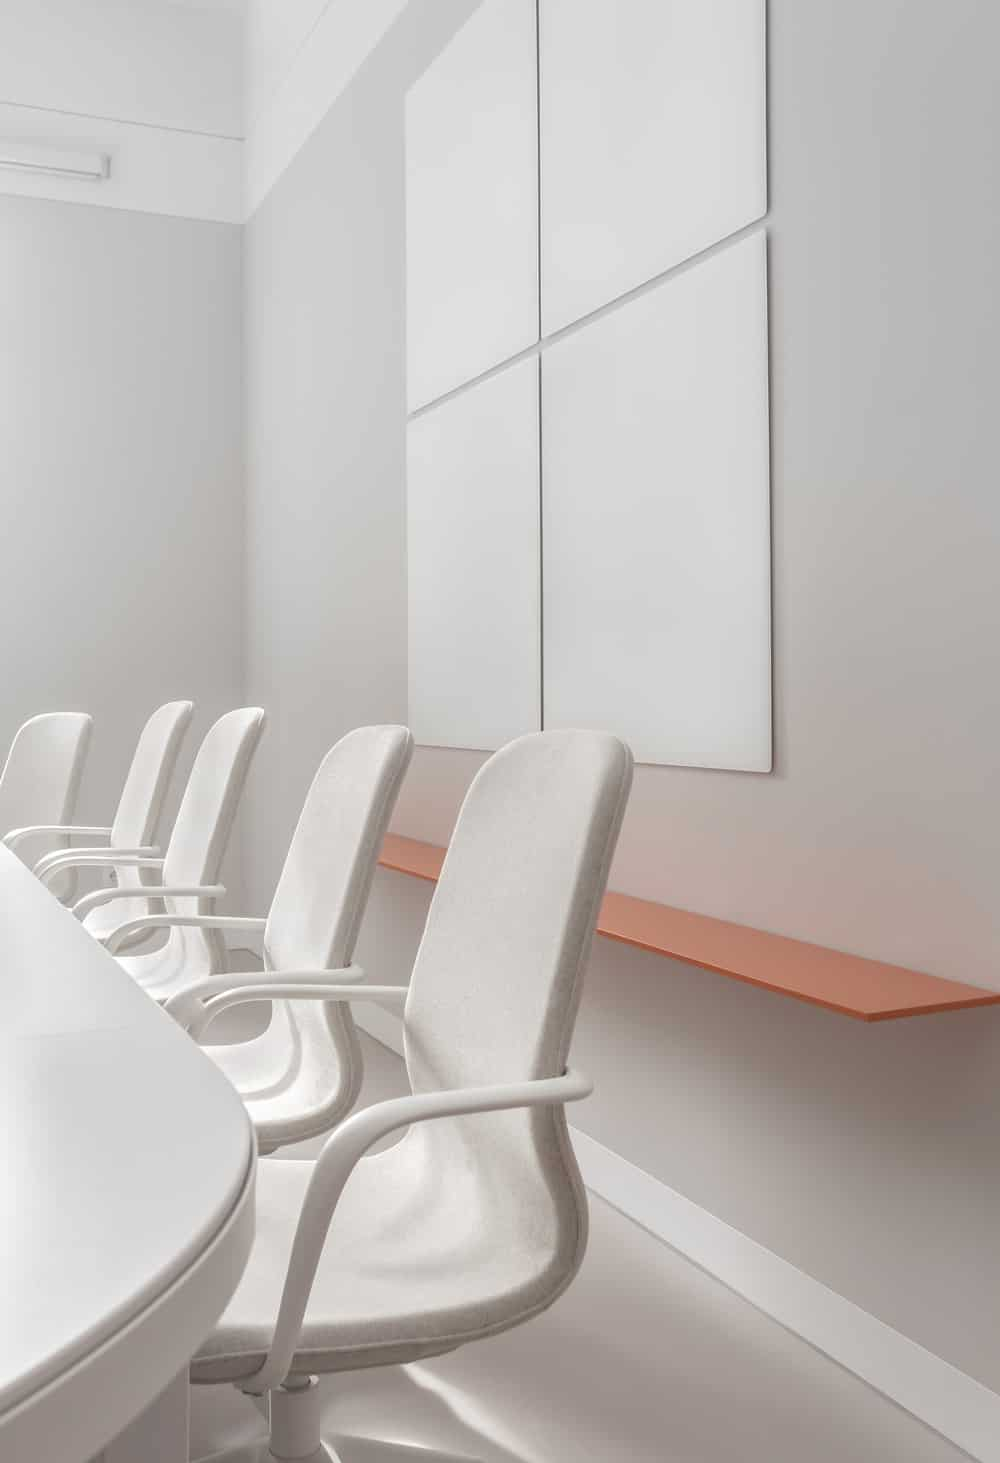 On the other side of the conference table is a floating orange shelf topped with a set of wall decoration.